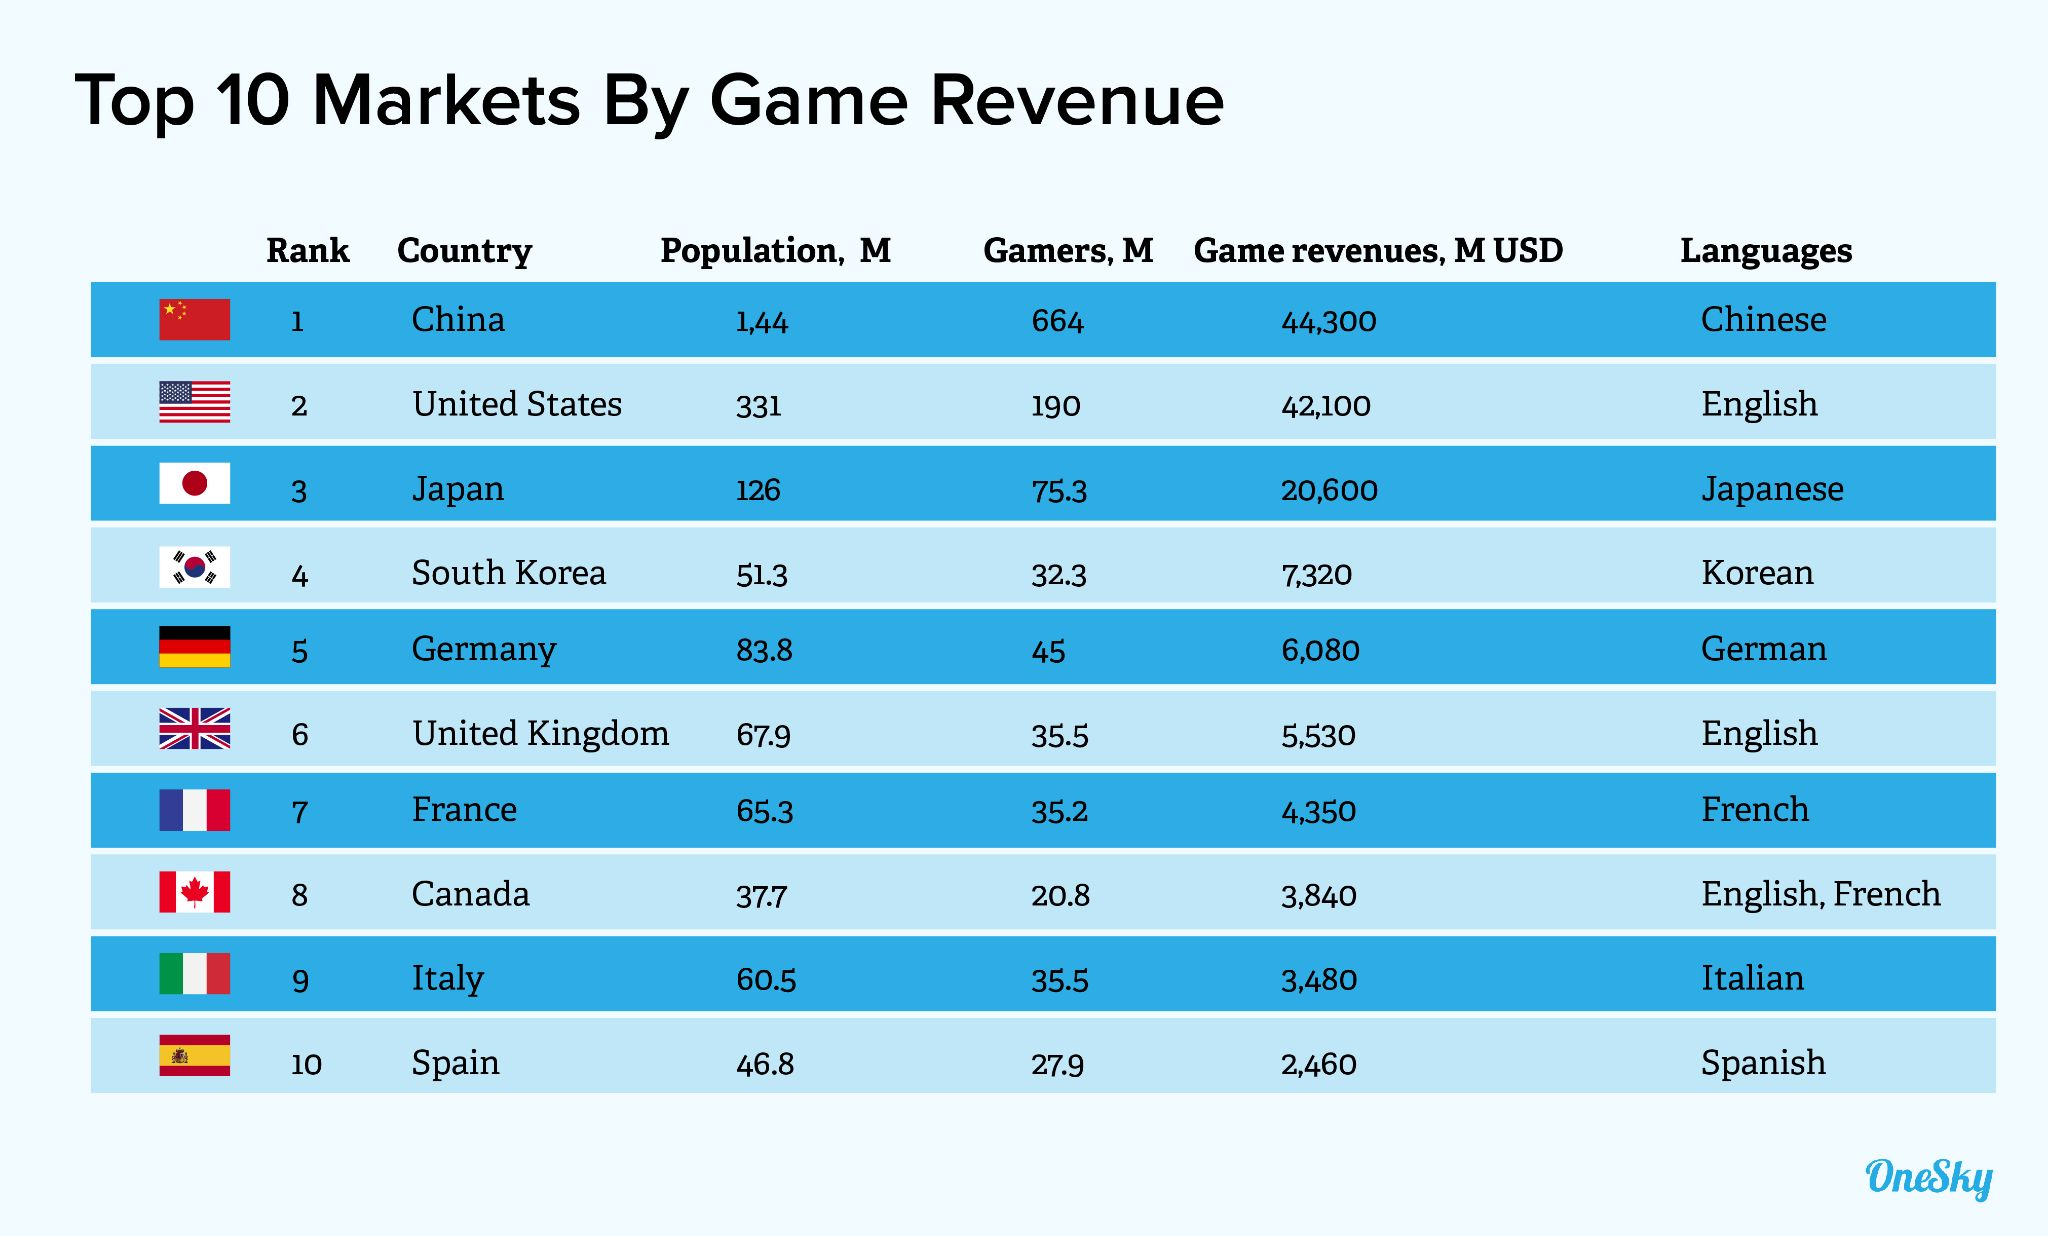 Top 10 Markets By Game Revenue